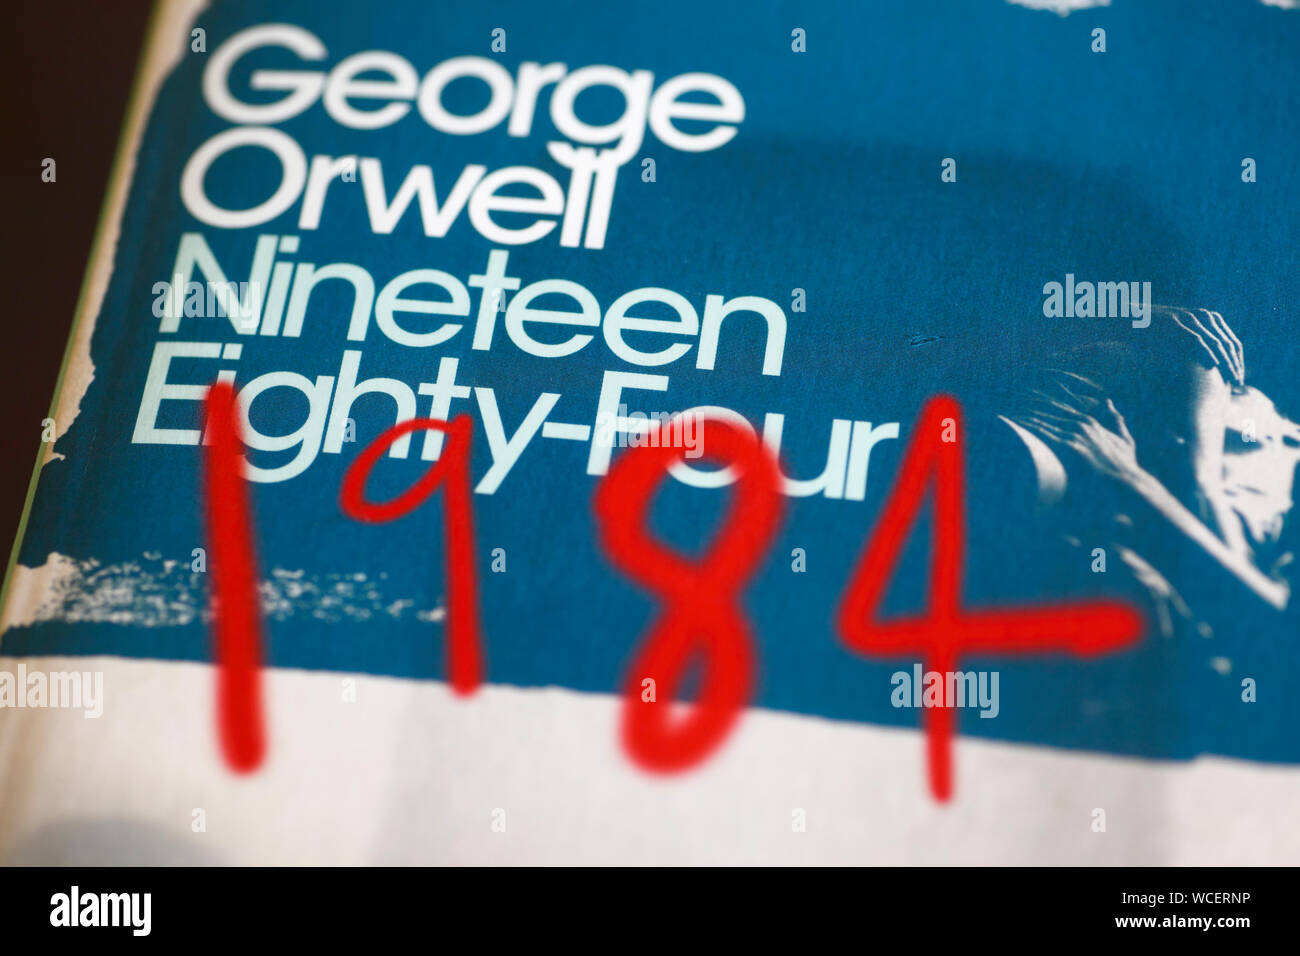 George Orwell's 1984 book cover. Stock Photo